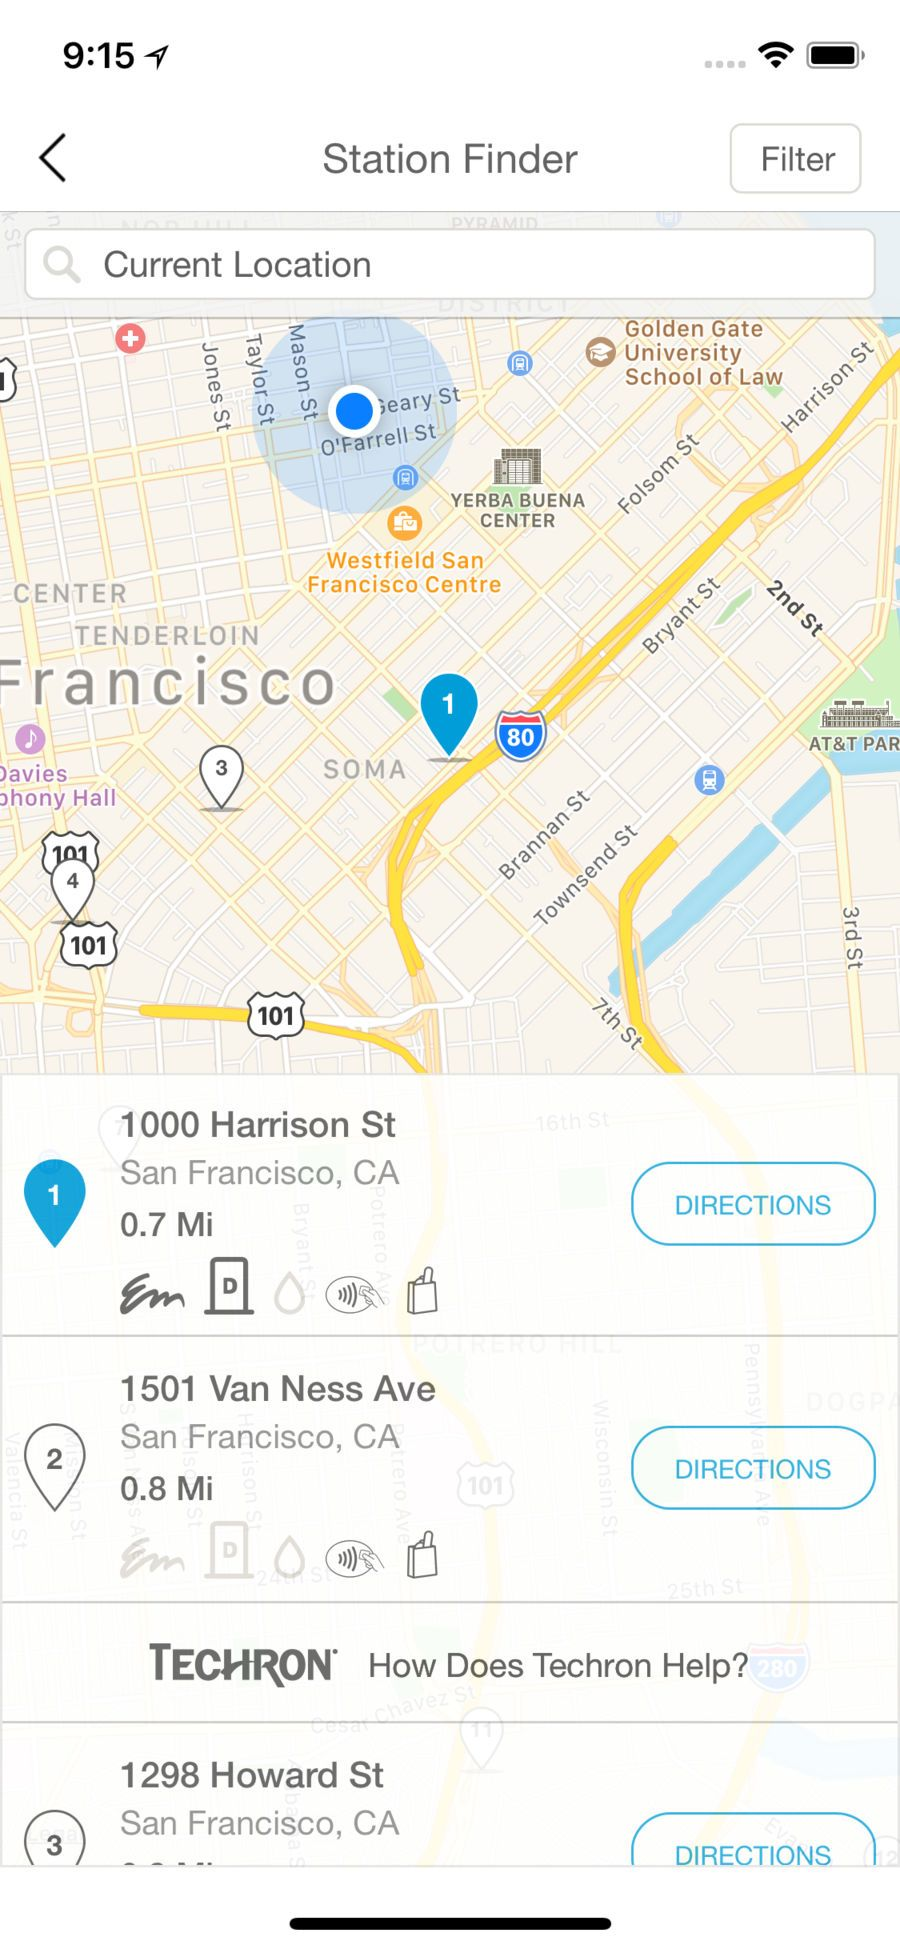 Chevron Station Finder #Travel#Navigation#apps#ios | top iphone game on